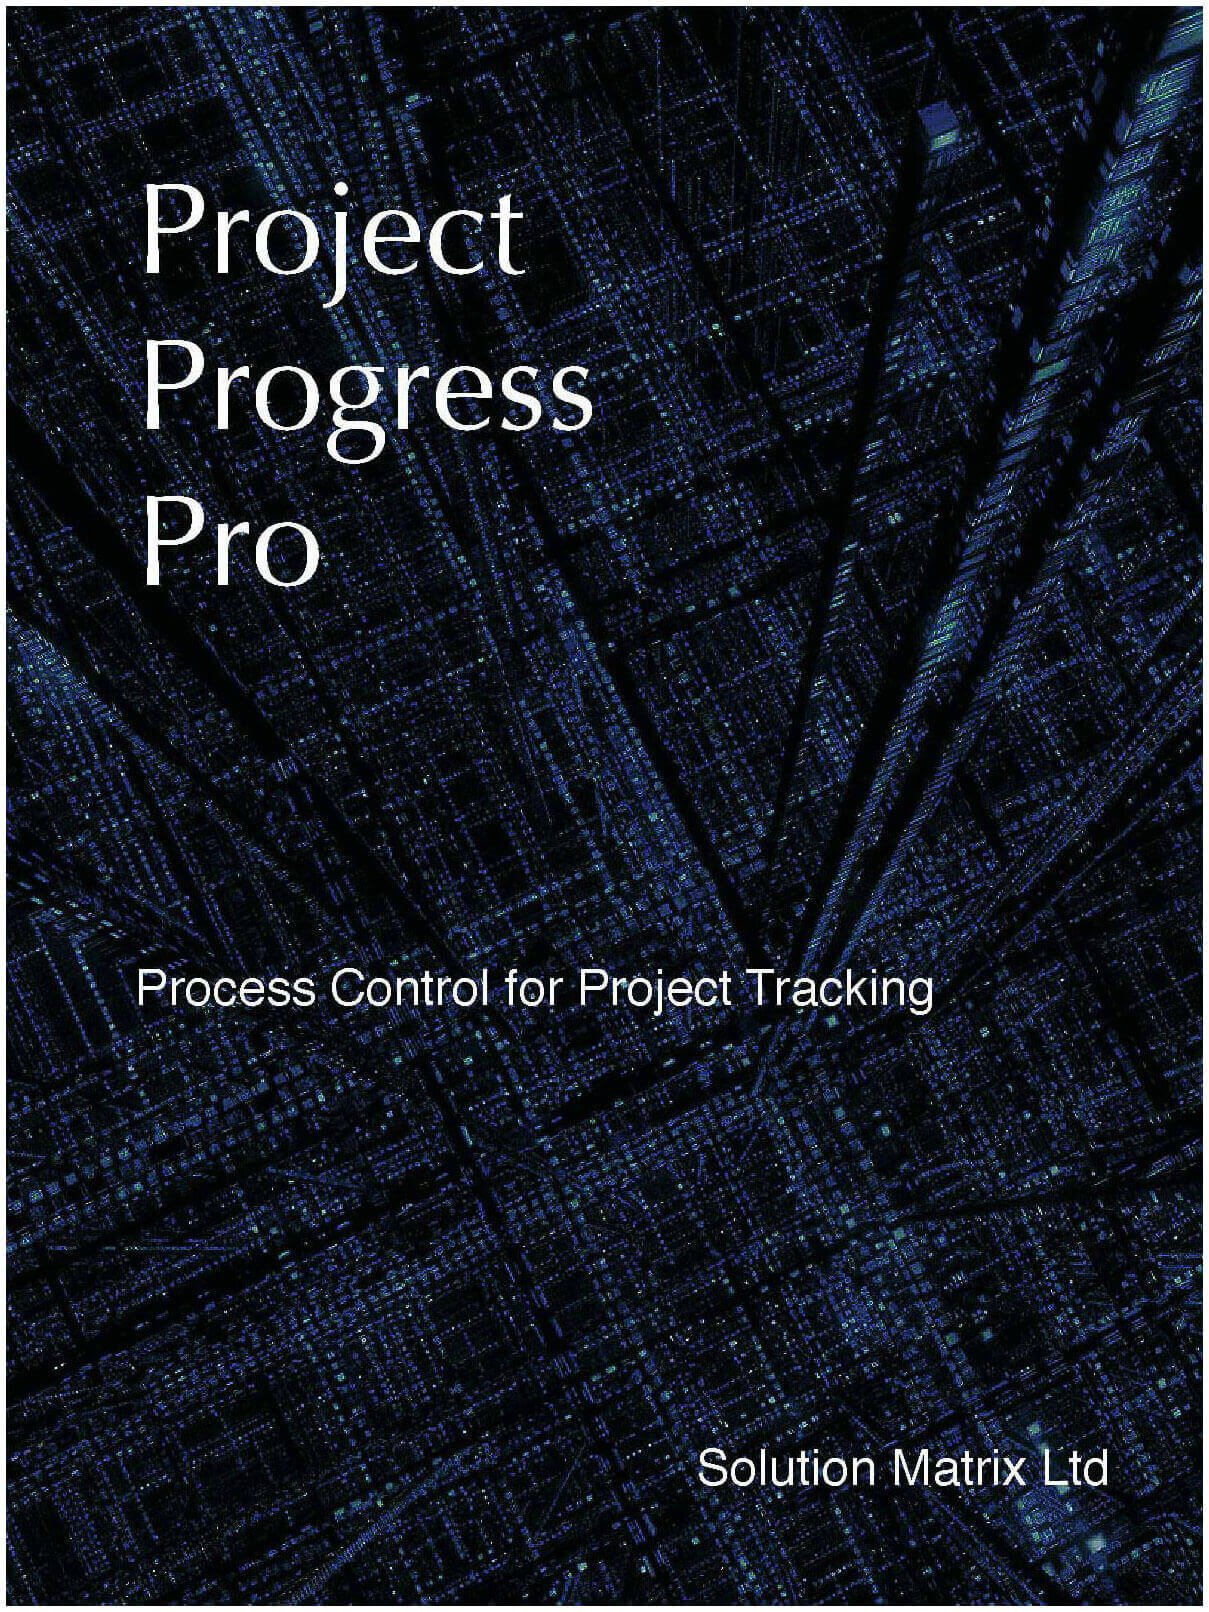 Buy the ebook Project Progress Pro